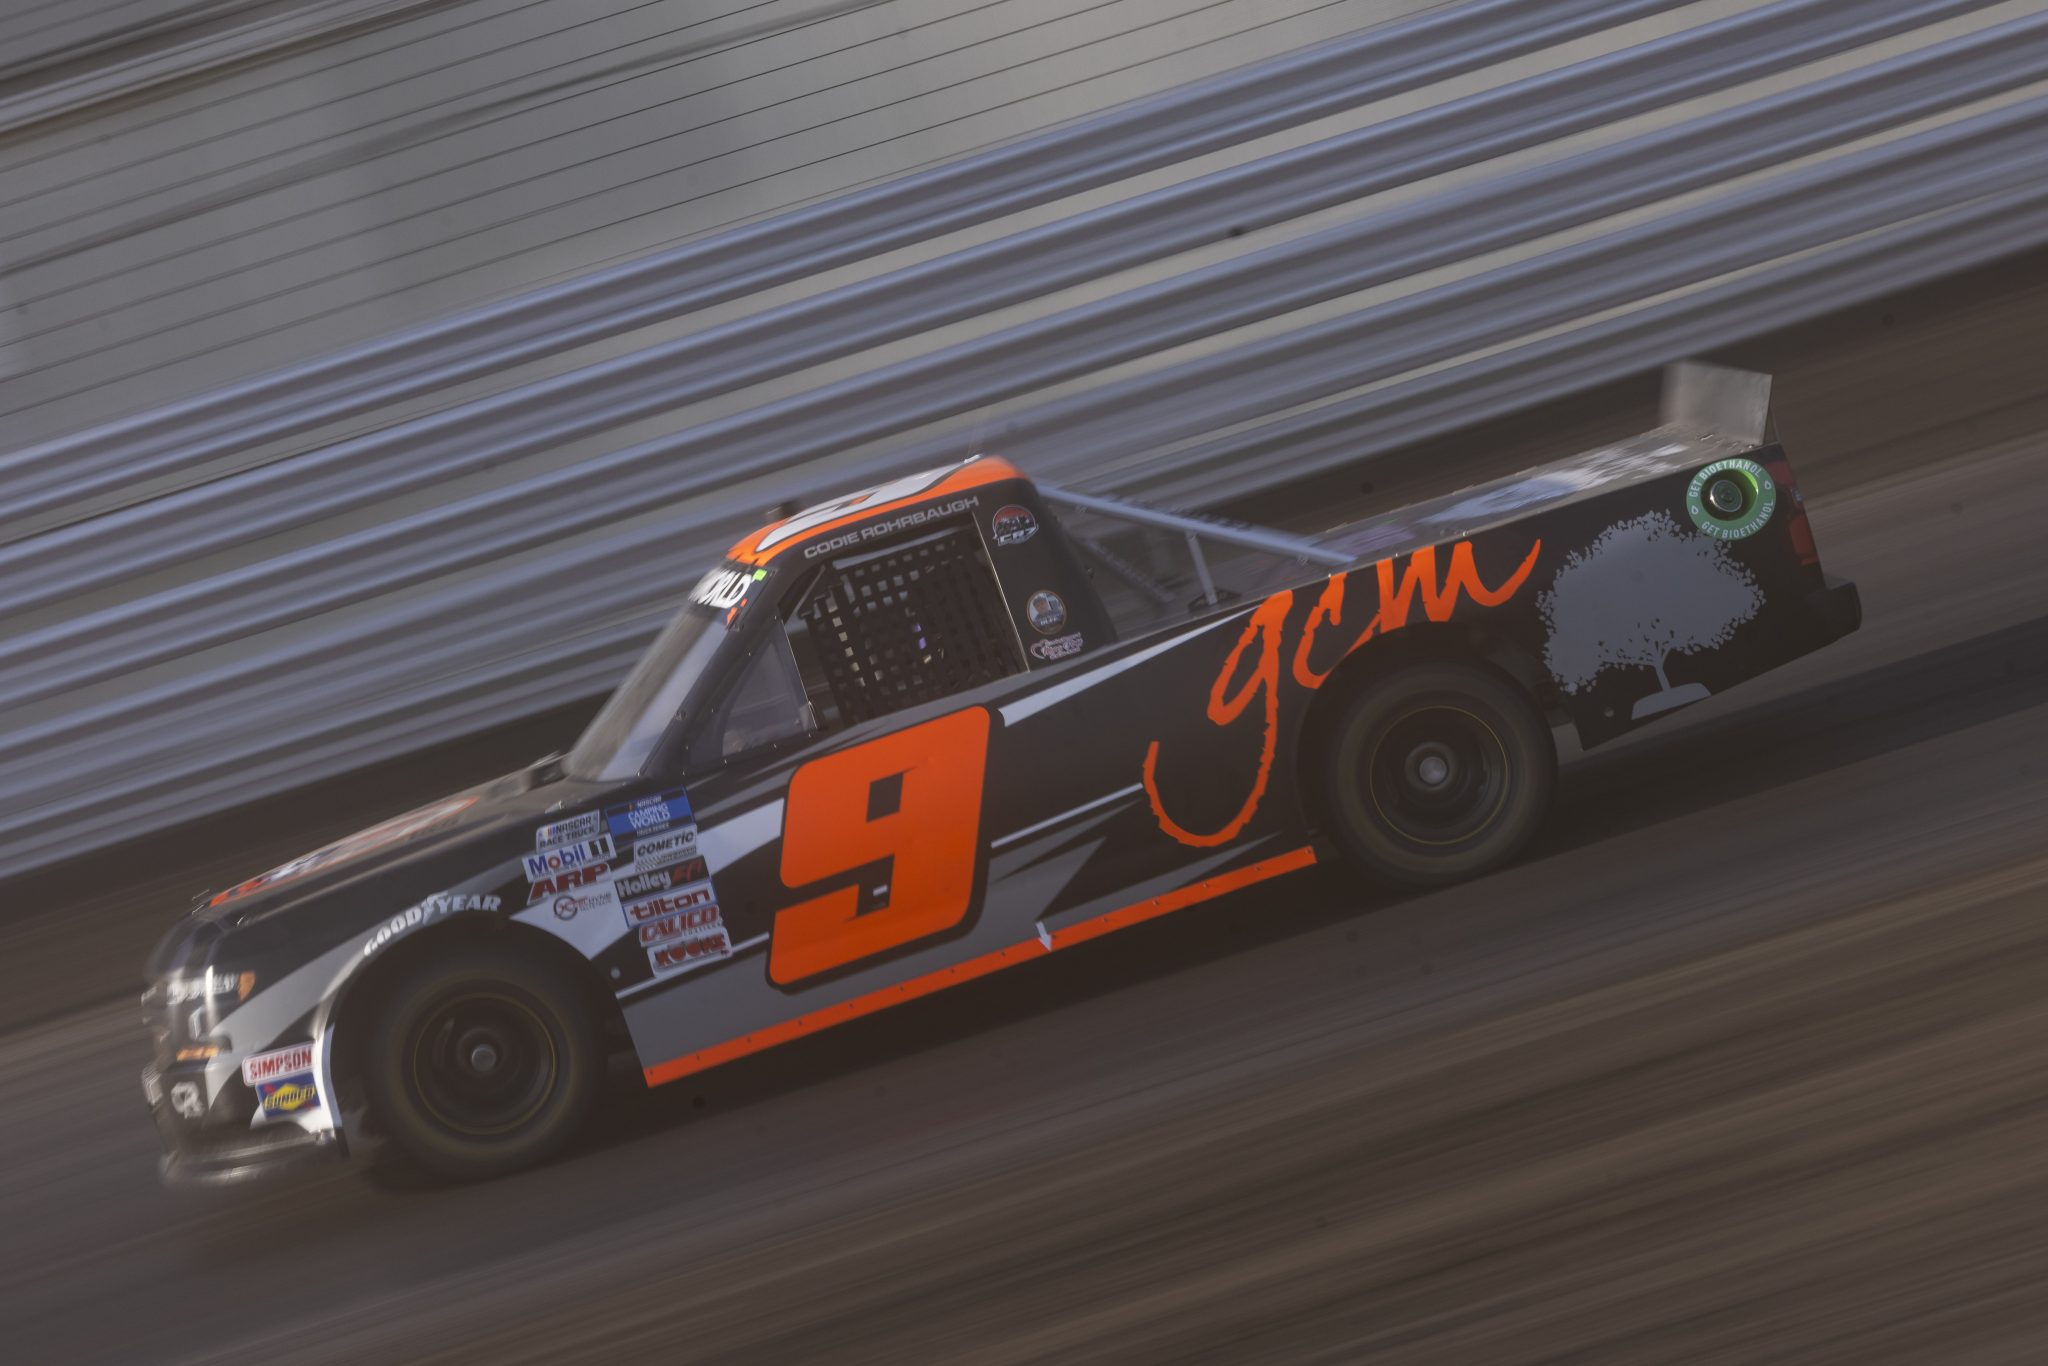 KNOXVILLE, IOWA - JULY 08: Codie Rohrbaugh, driver of the #9 Grant County Mulch Chevrolet, drives during practice for the NASCAR Camping World Truck Series Corn Belt 150 presented by Premier Chevy Dealers at Knoxville Raceway on July 08, 2021 in Knoxville, Iowa. (Photo by James Gilbert/Getty Images) | Getty Images